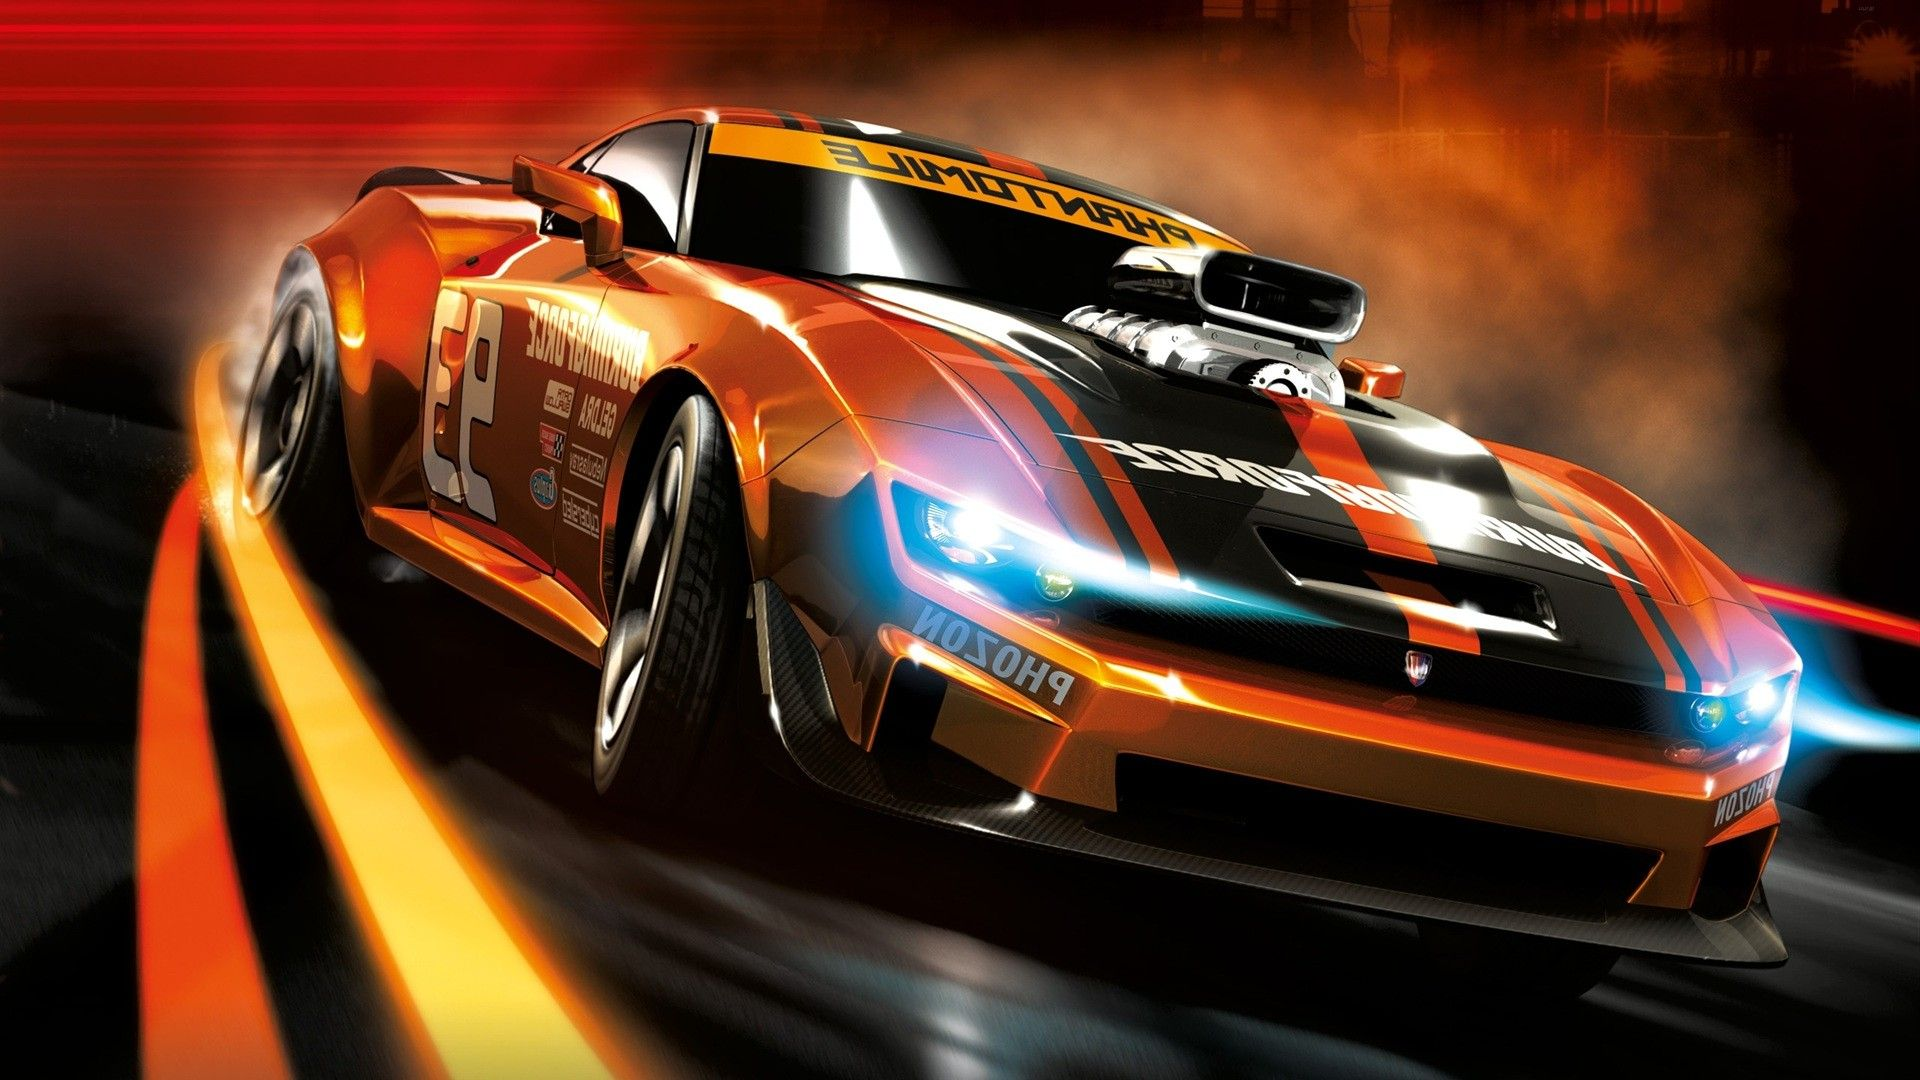 Cool Car Background Wallpapers  Wallpapers, Backgrounds, Images   awesome cars for my boys